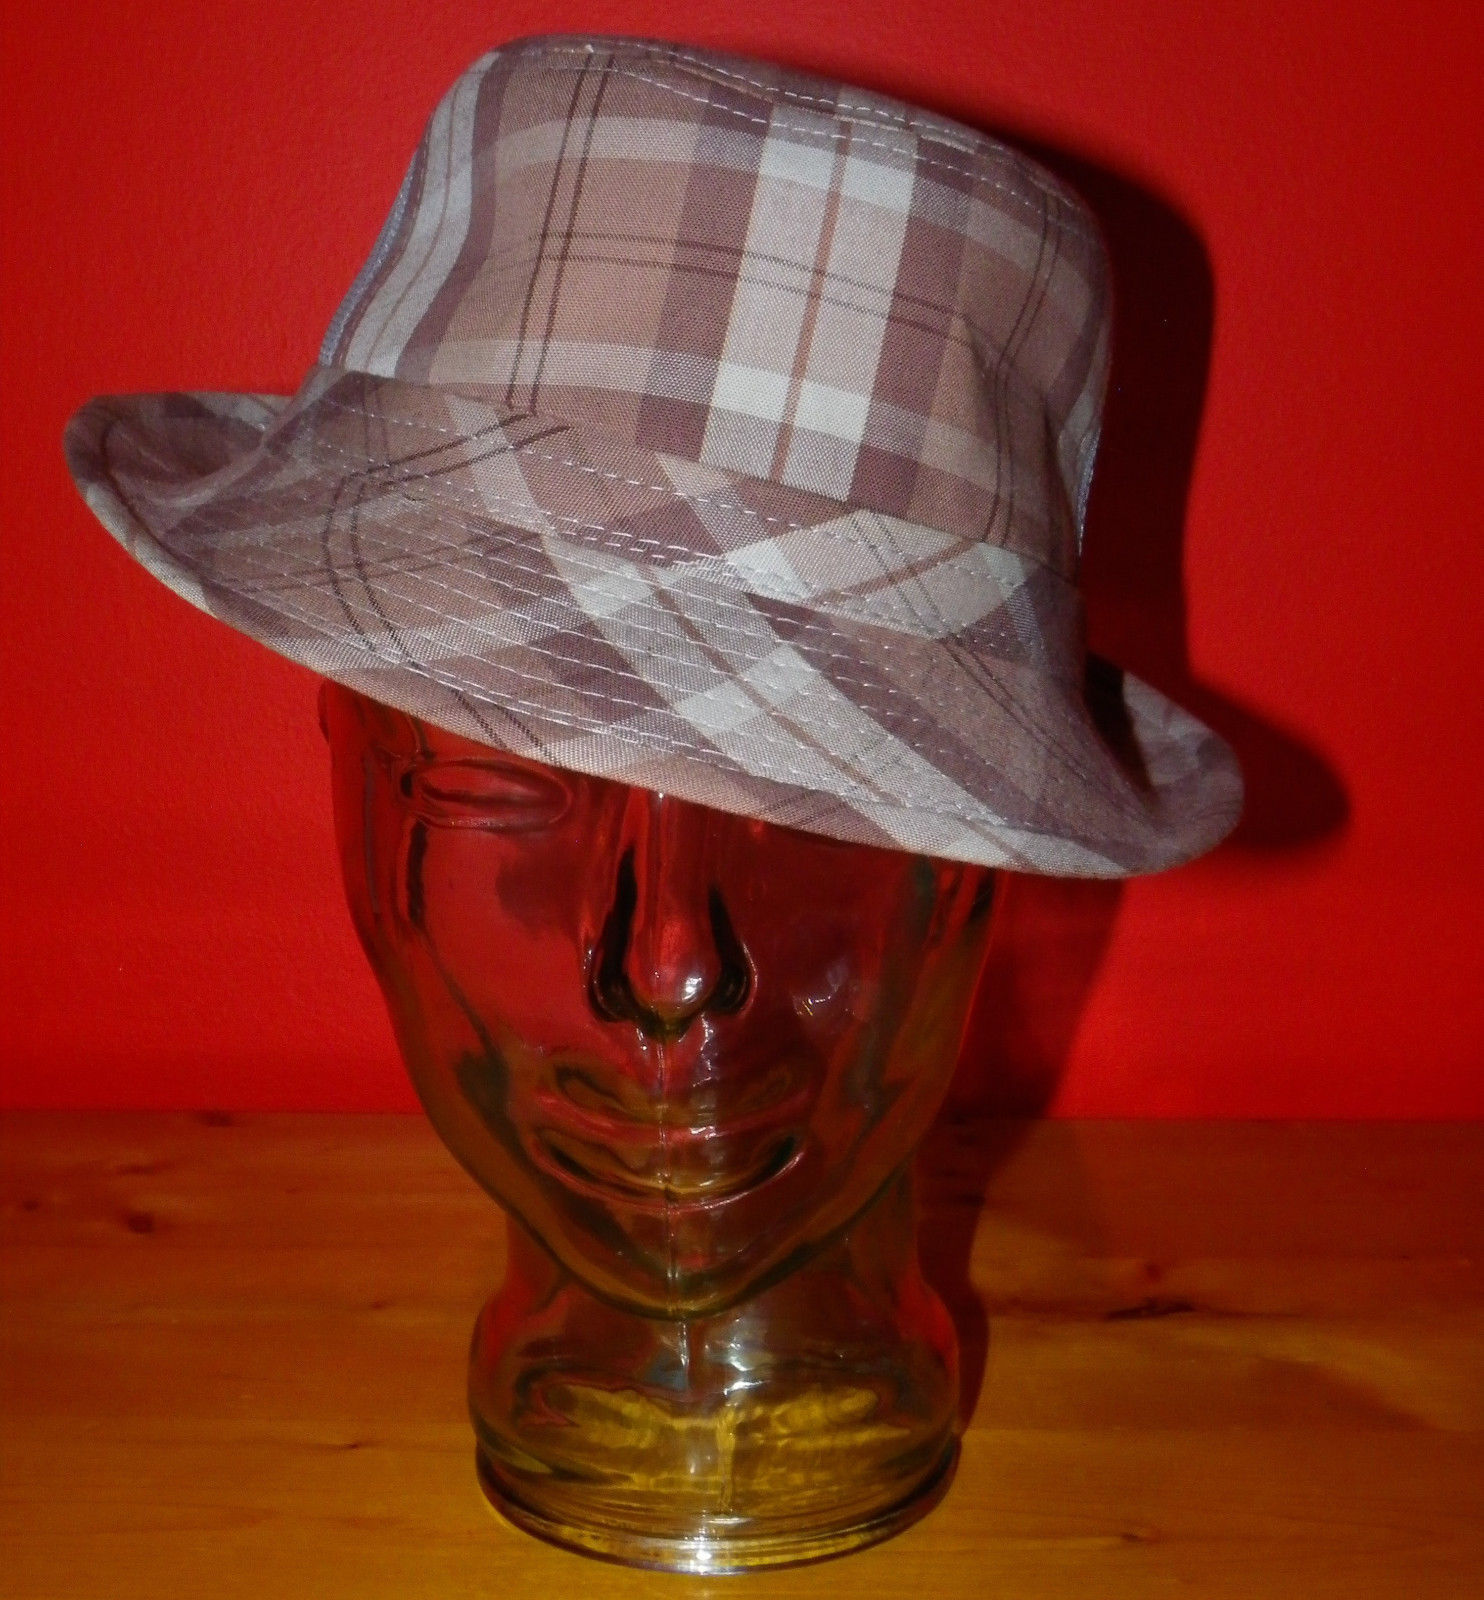 Dorfman Pacific Authentic Handmade Headwear Size M Warm Plaid Fedora Trilby image 1